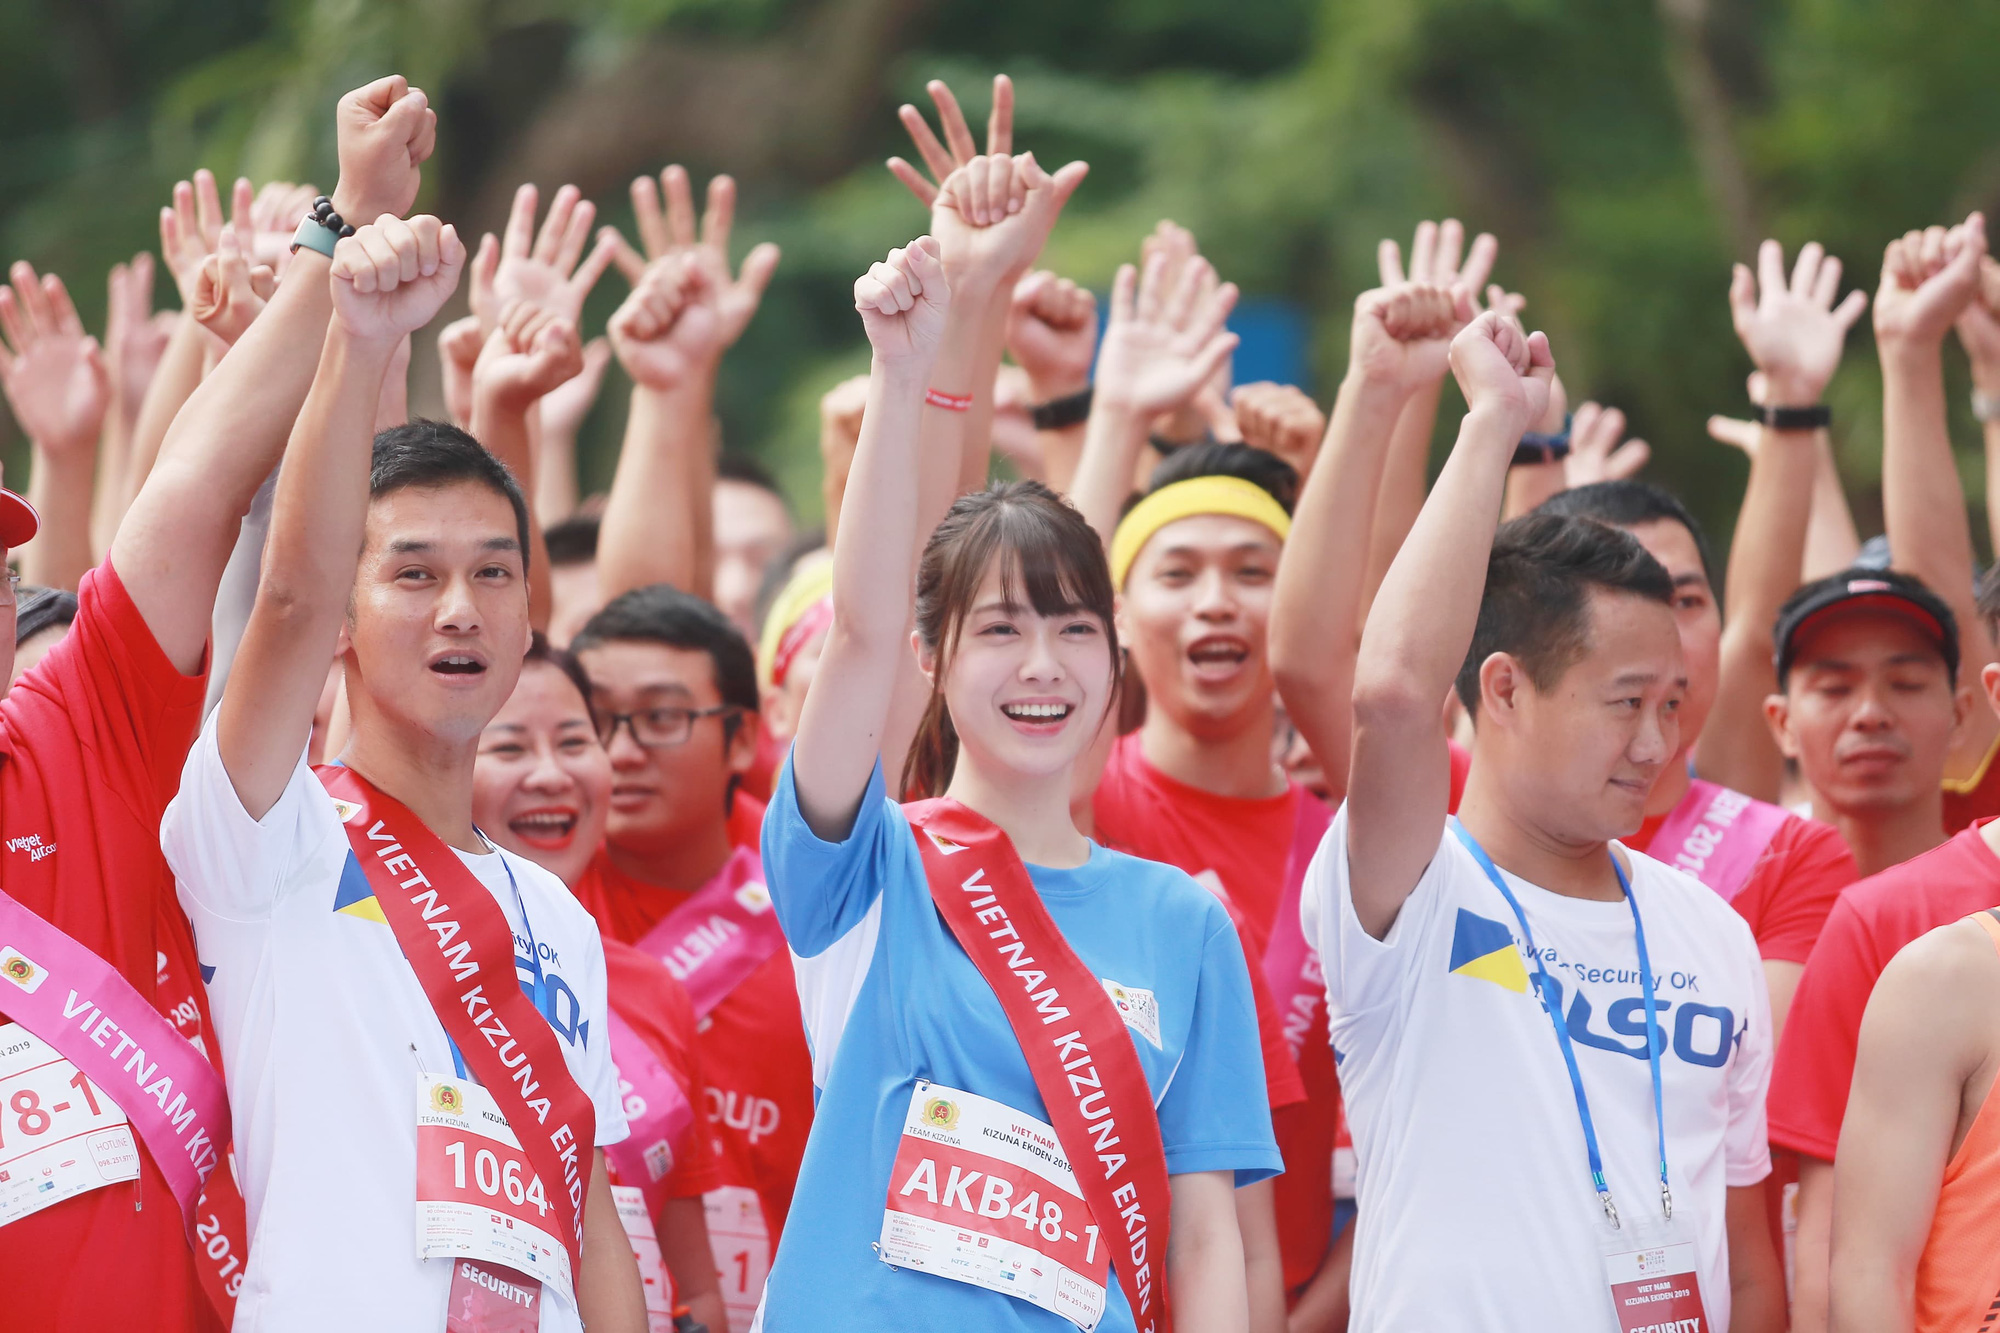 A member of Japanese girl idol group AKB48 is pictured at the starting point.